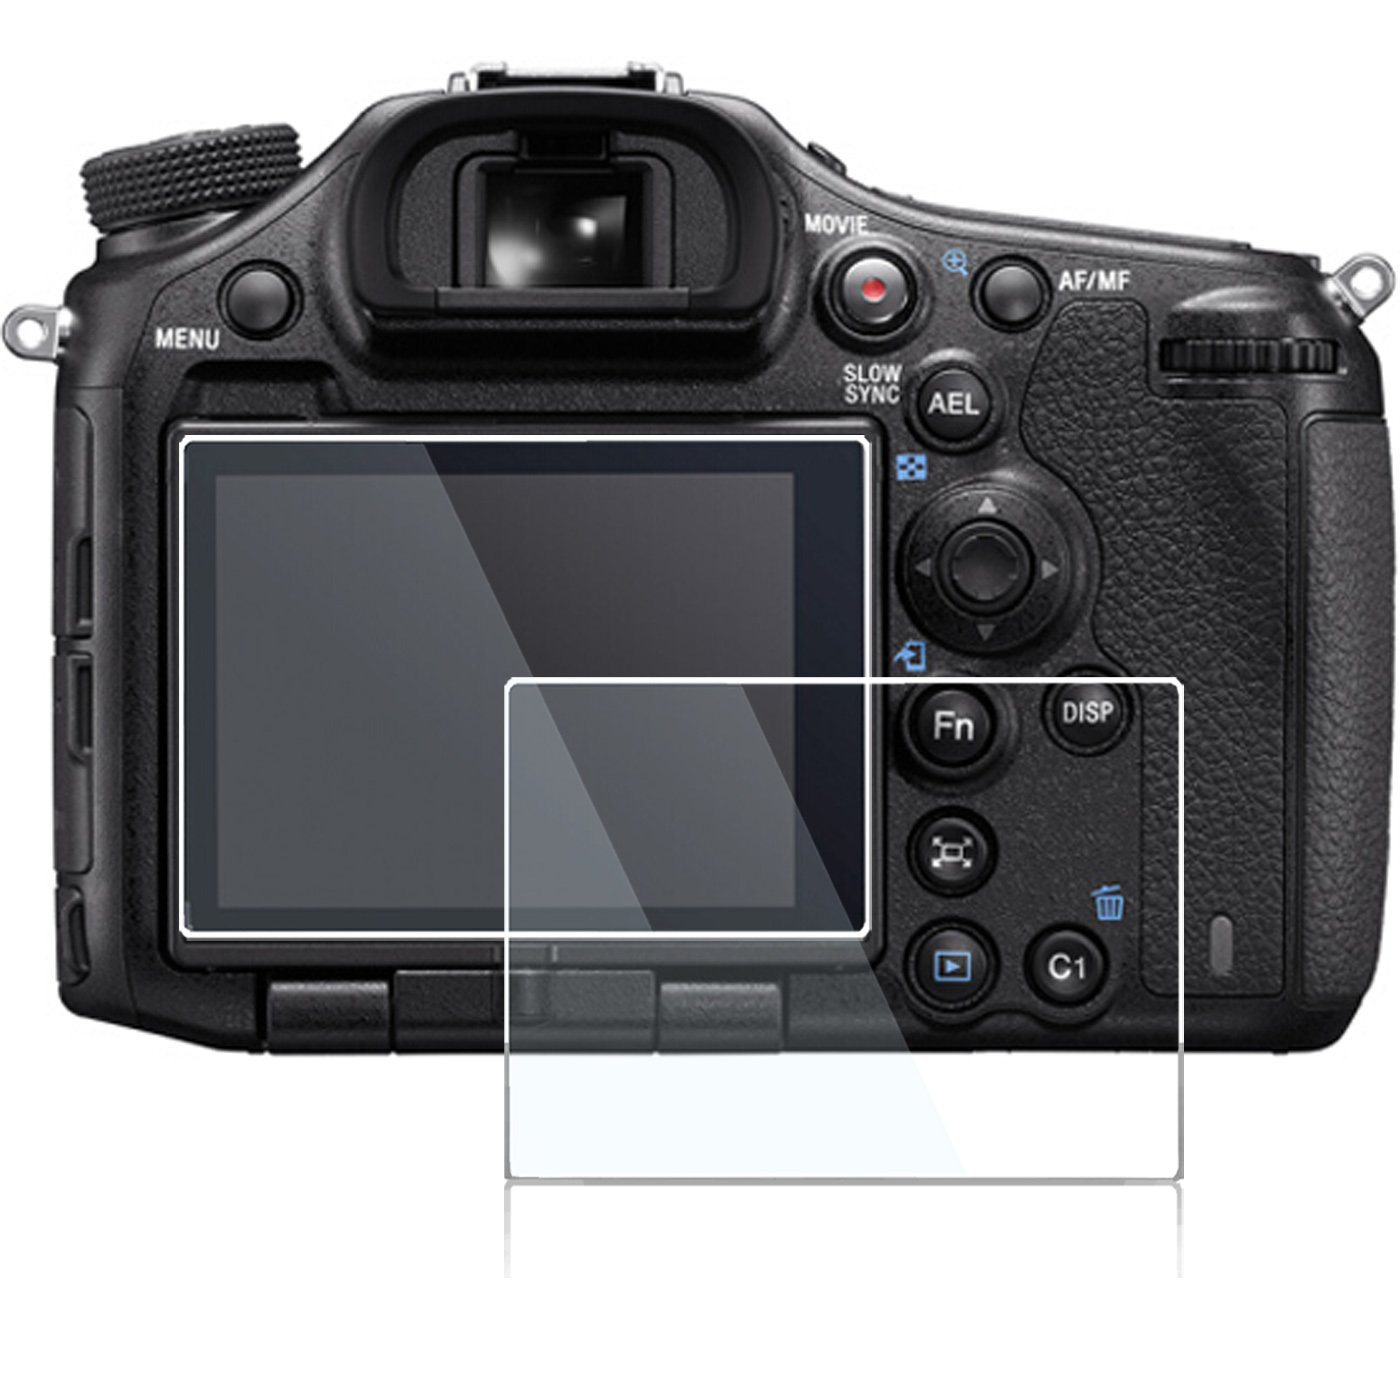 Screen Protector for Sony A7R Mark ii iii a7iii a7riii A7RII A7SII A99ii A77ii Sony DSC-RX100 VI III IV V RX100III RX100IV RX100V RX100VI RX10 III IV V,debous Anti-Finger Tempered Glass 2pack